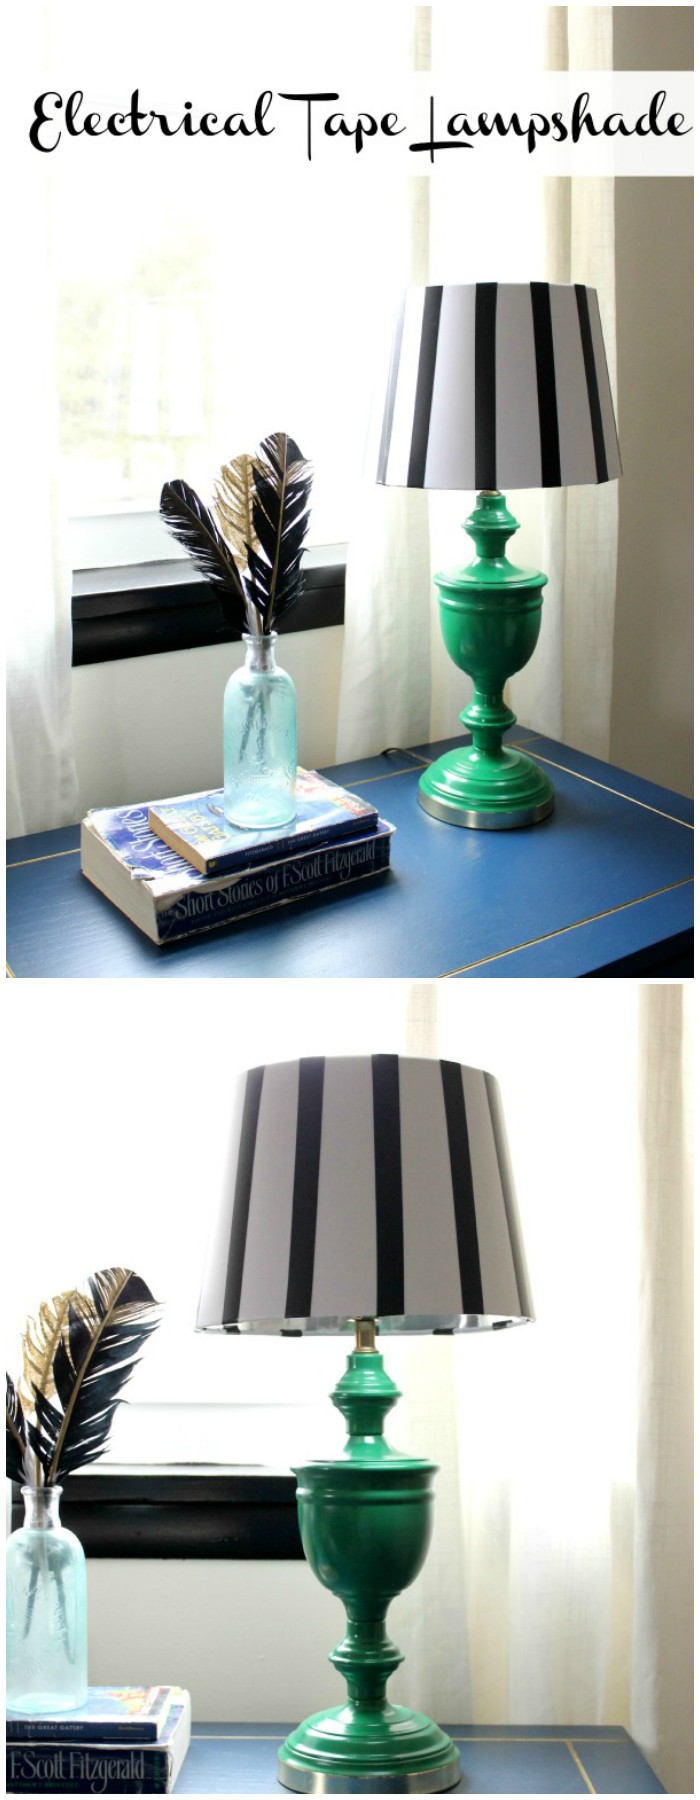 Electrical Tape Lampshade